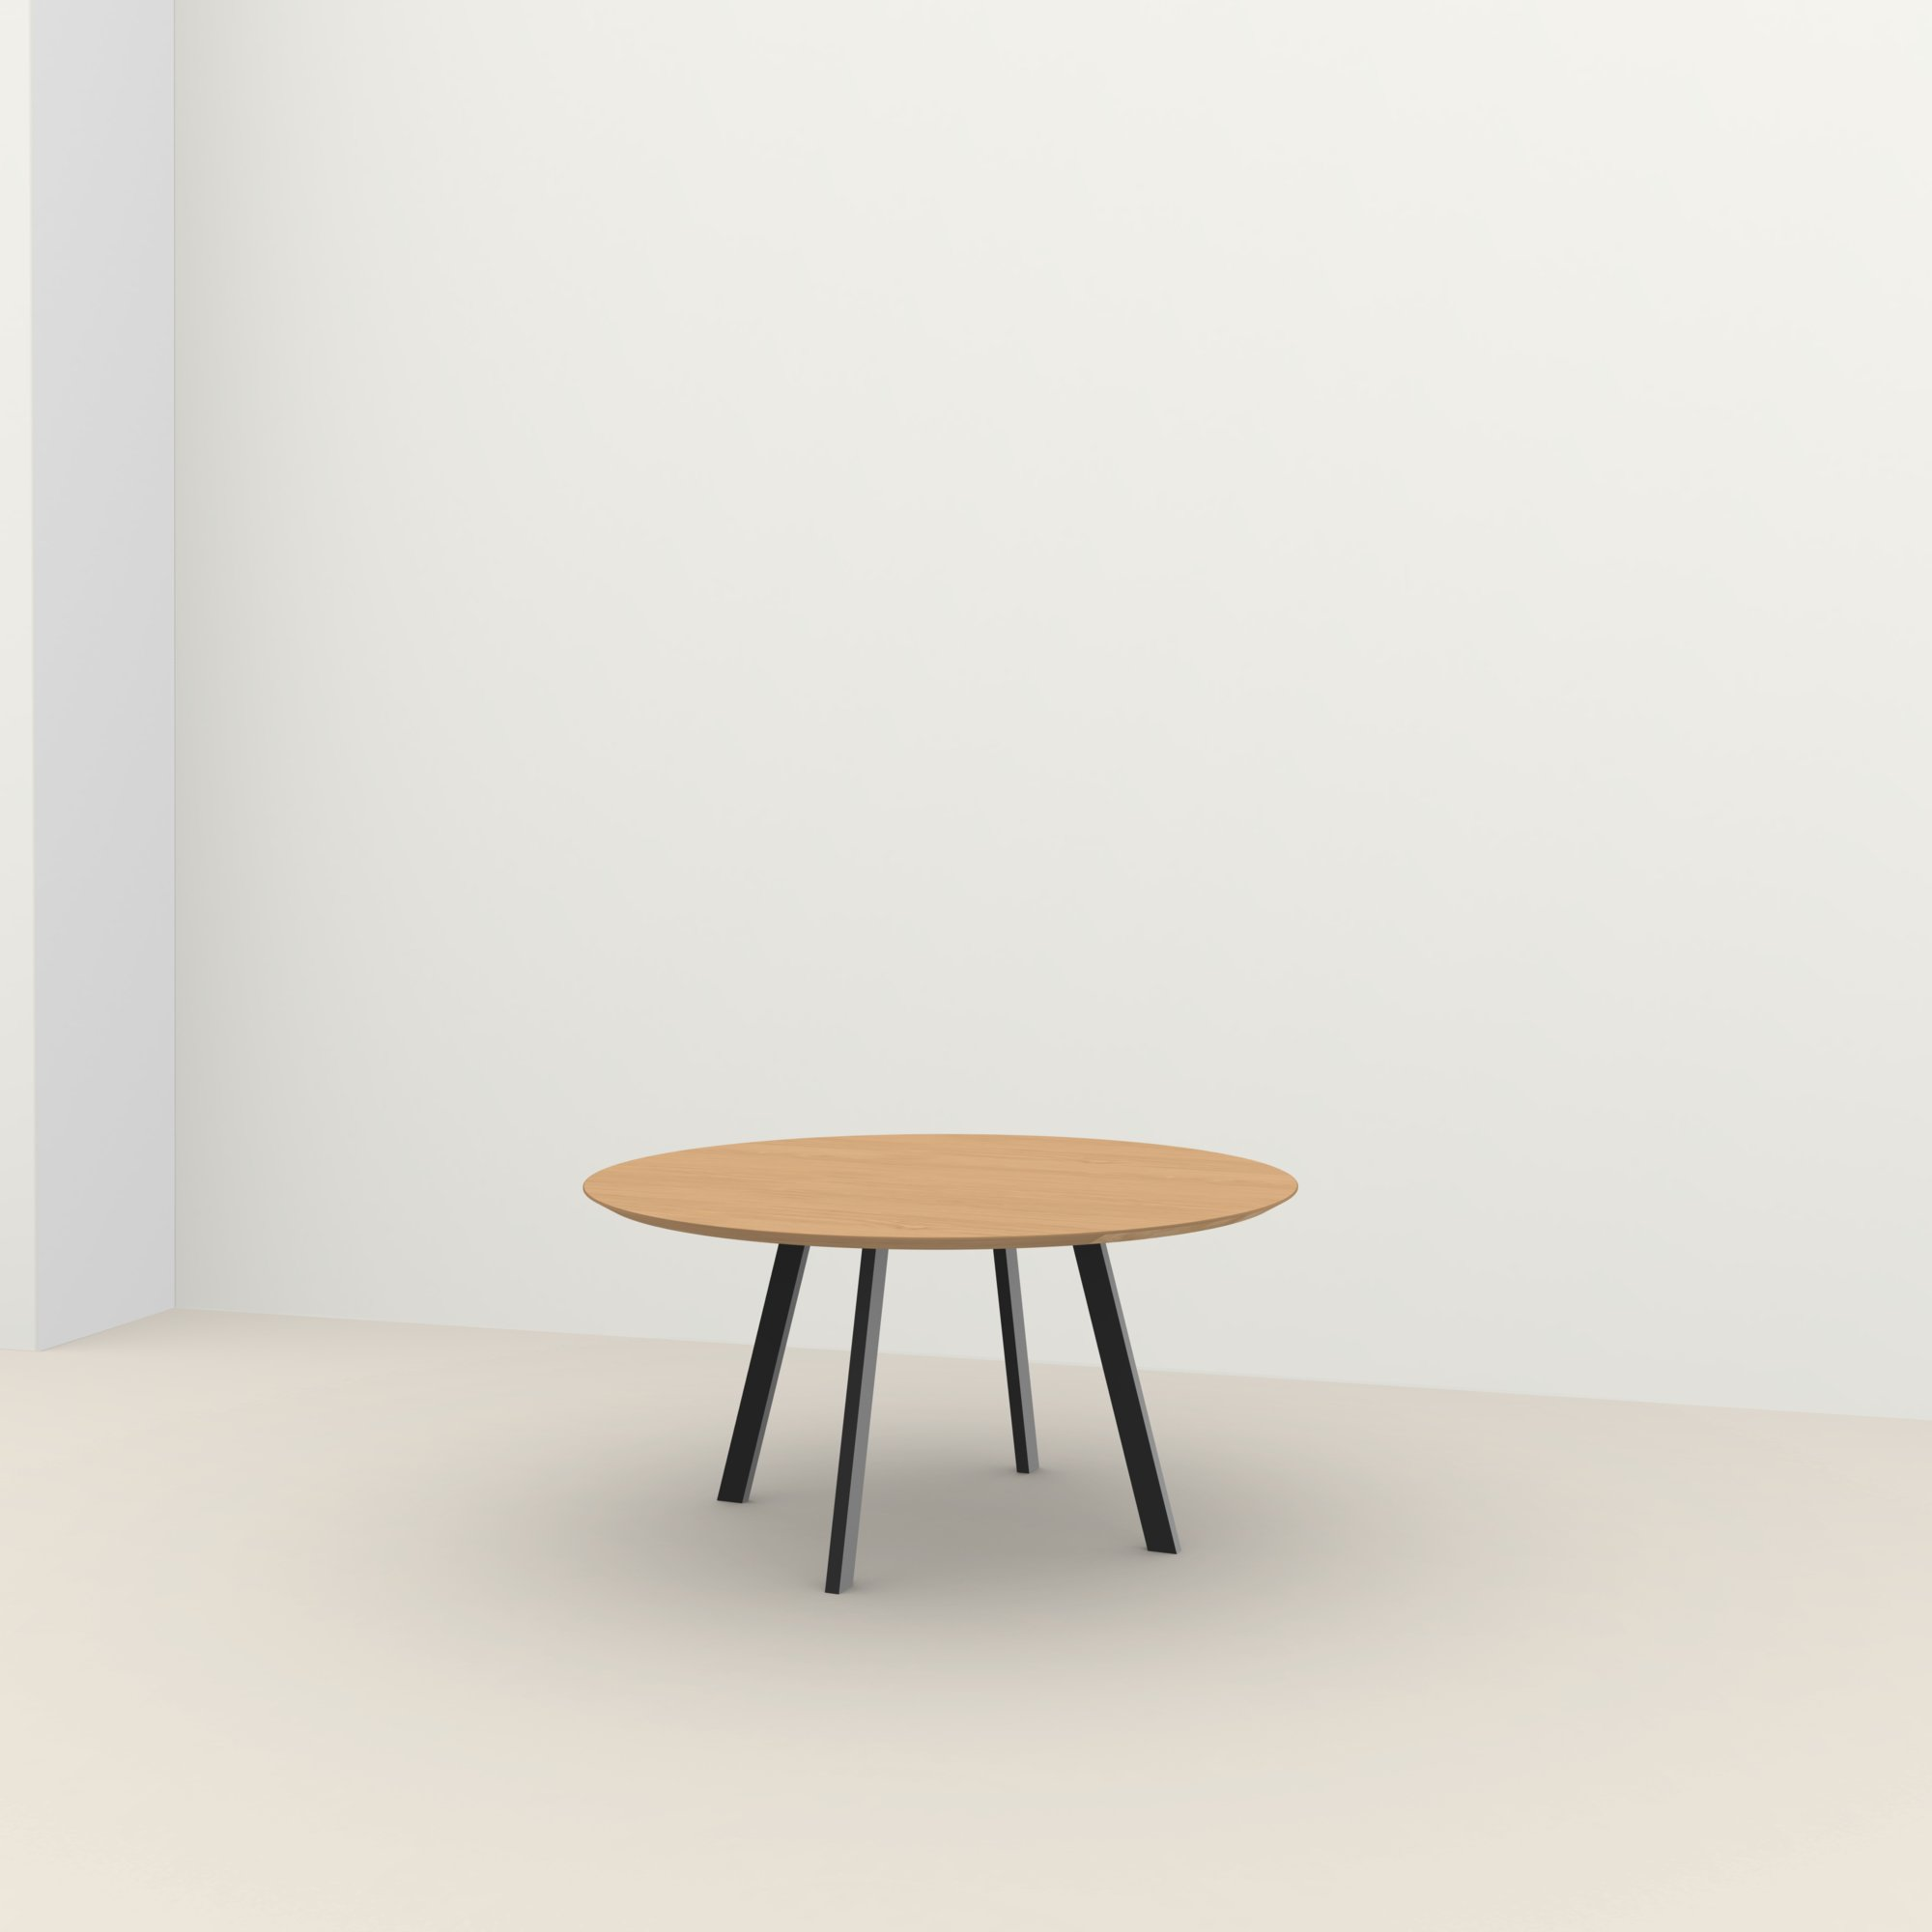 Ronde design tafel op maat | New Co Quadpod Steel black powdercoating | Oak hardwax oil natural light 3041 | Studio HENK |